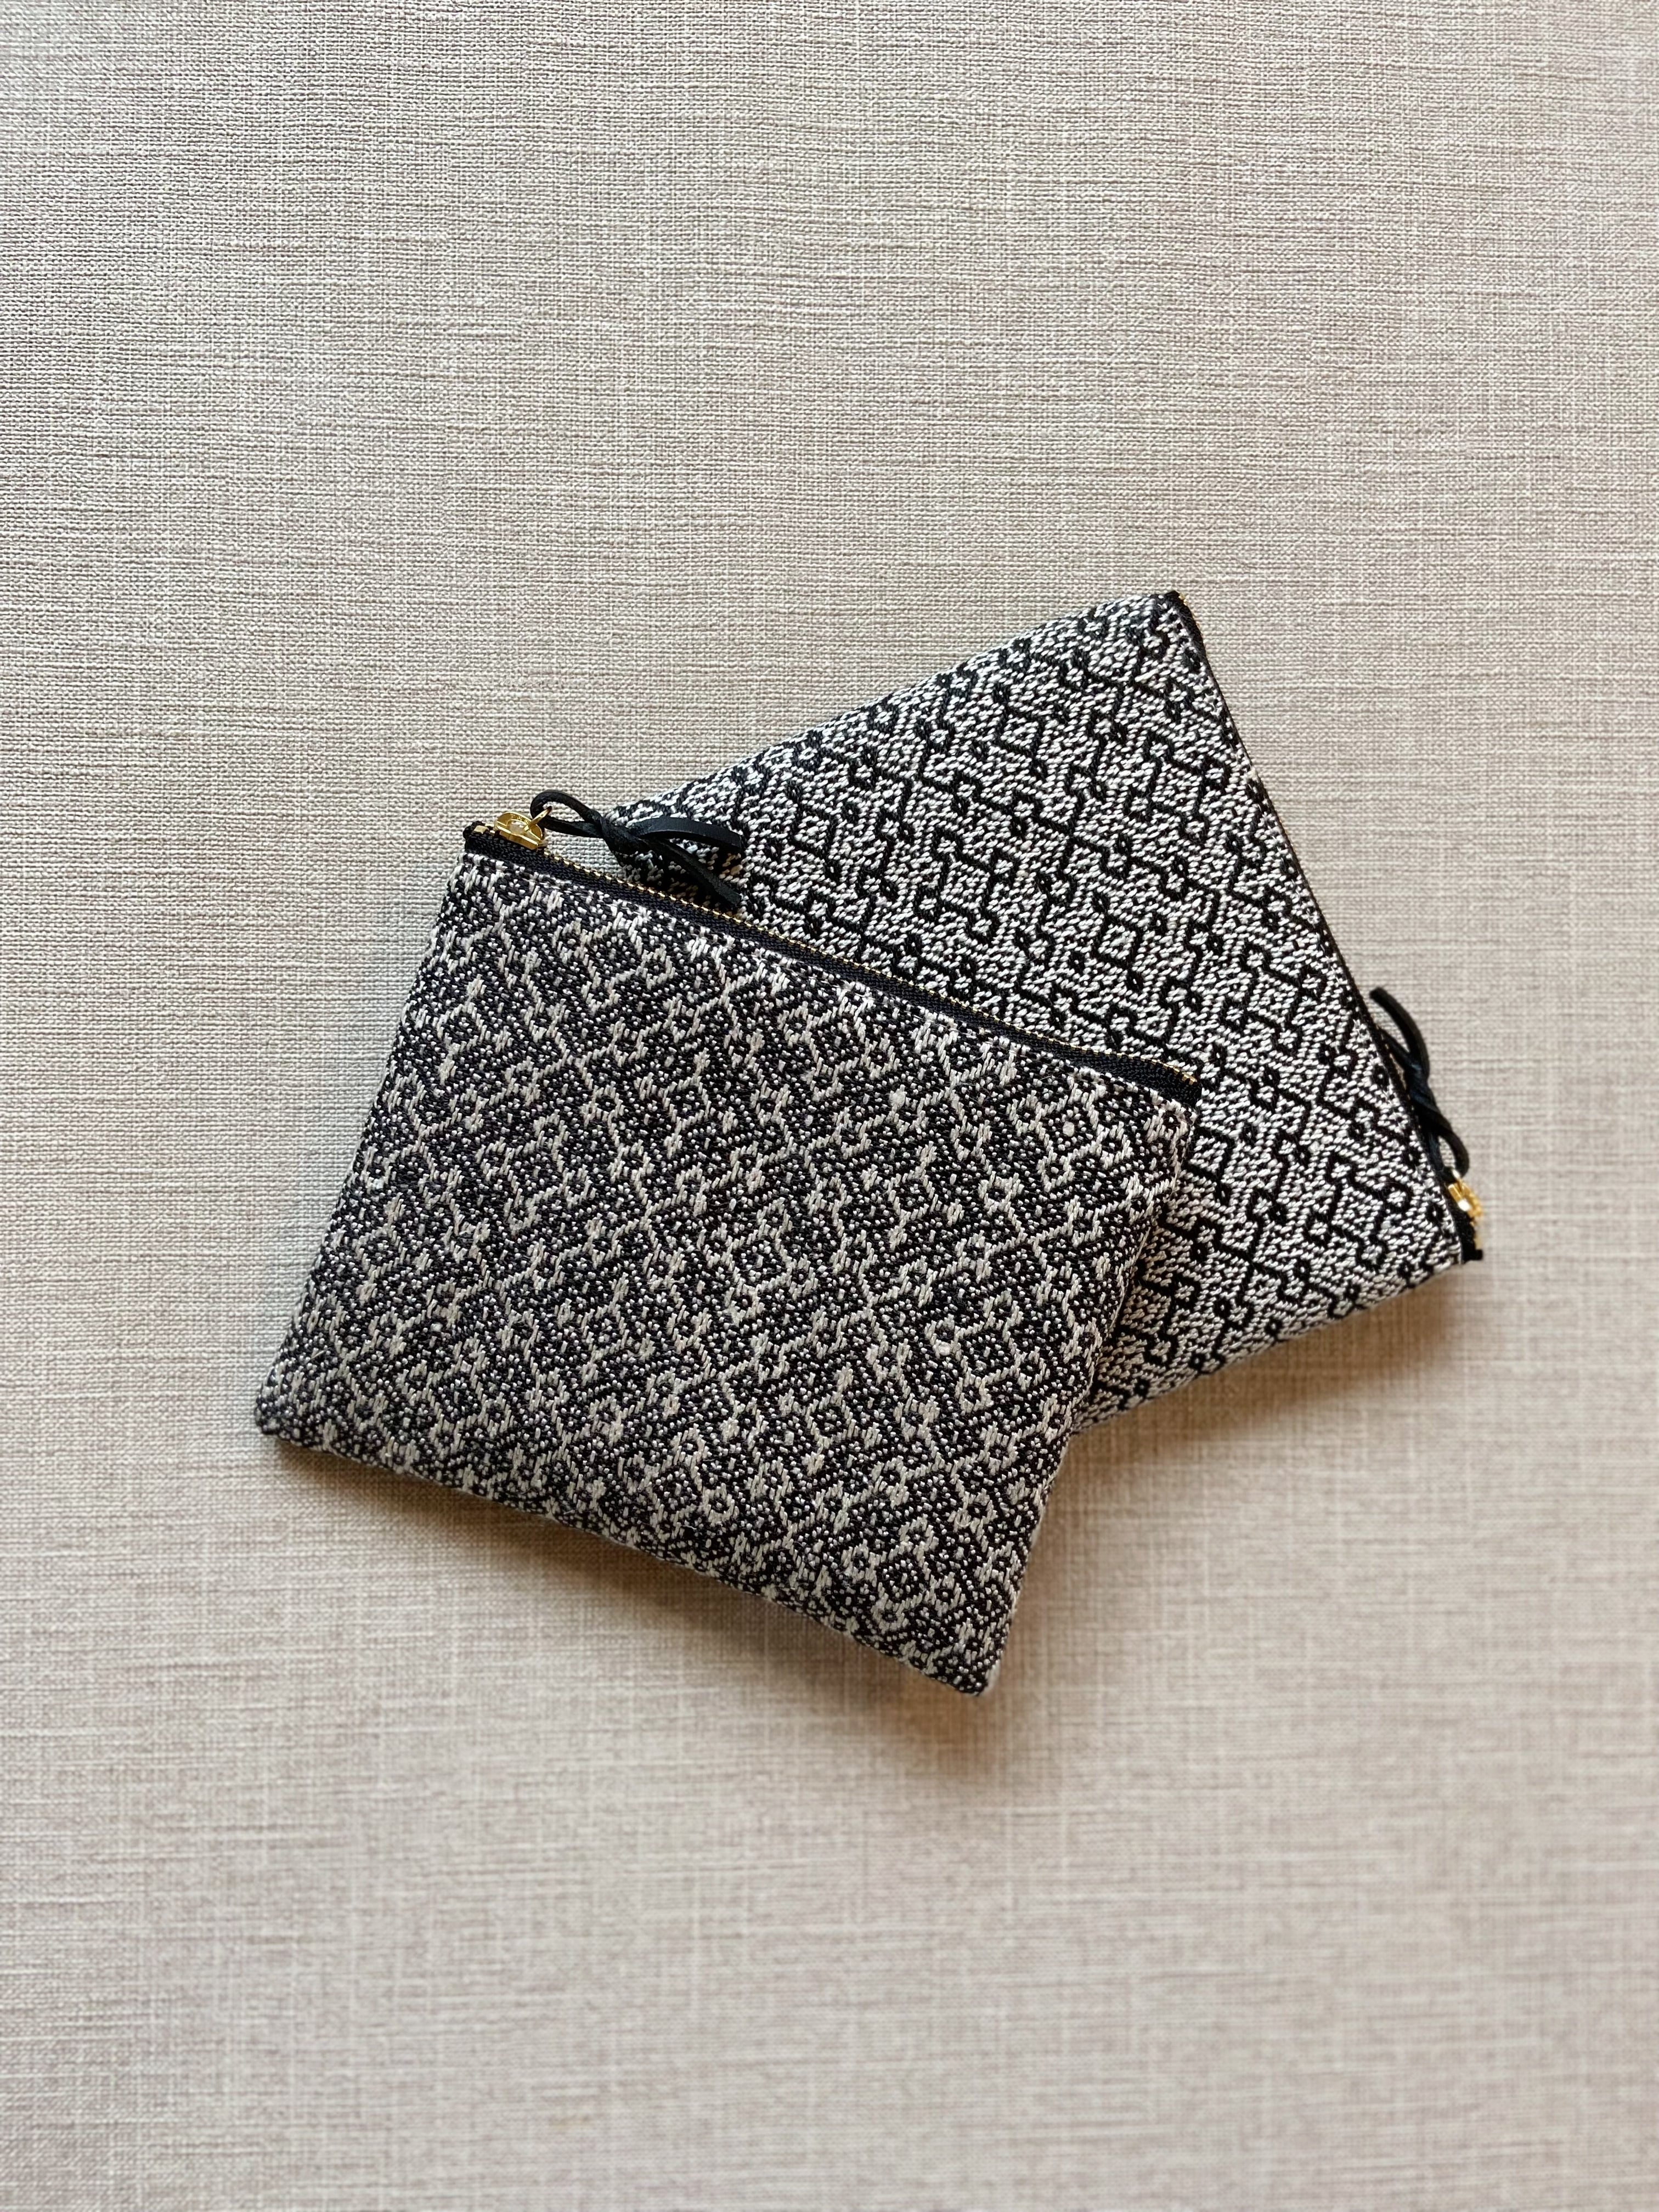 Hand-woven pouch 14cm / Rocca   手織りミニポーチ 六花